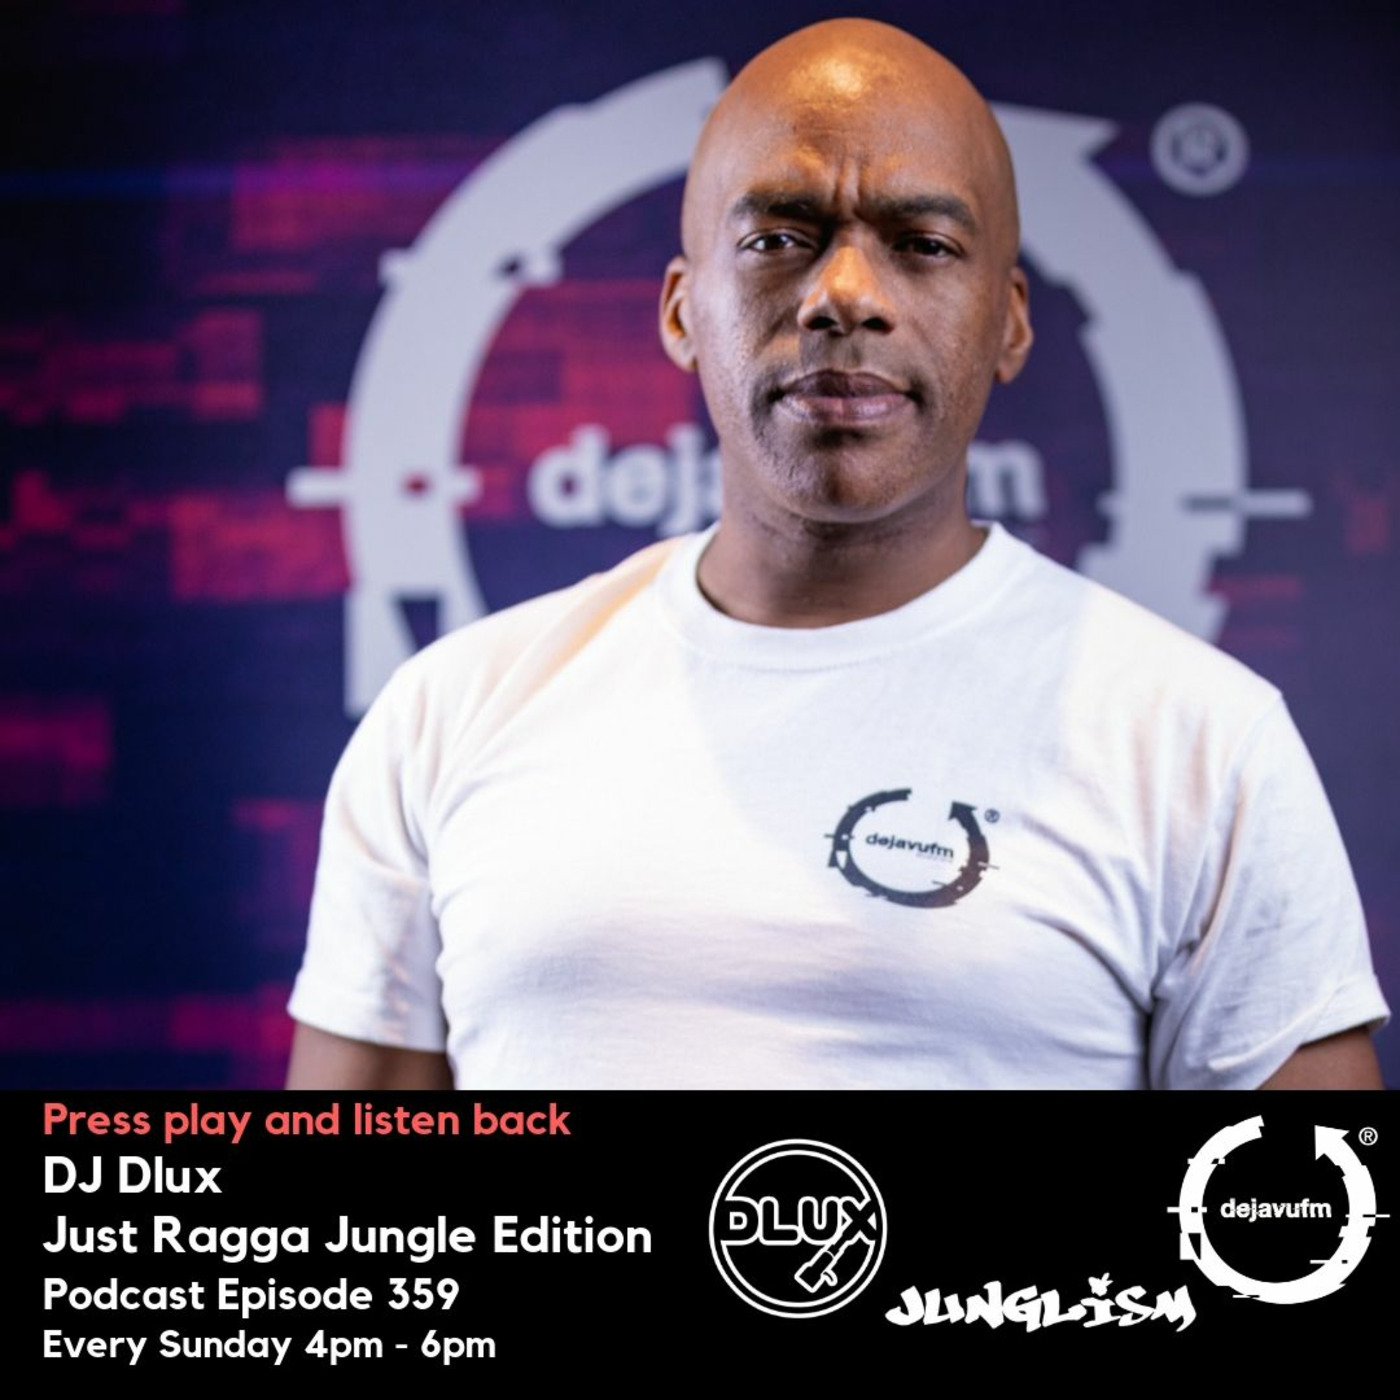 DJ Dlux - We Play Music - Podcast Episode 359 - Just Jungle